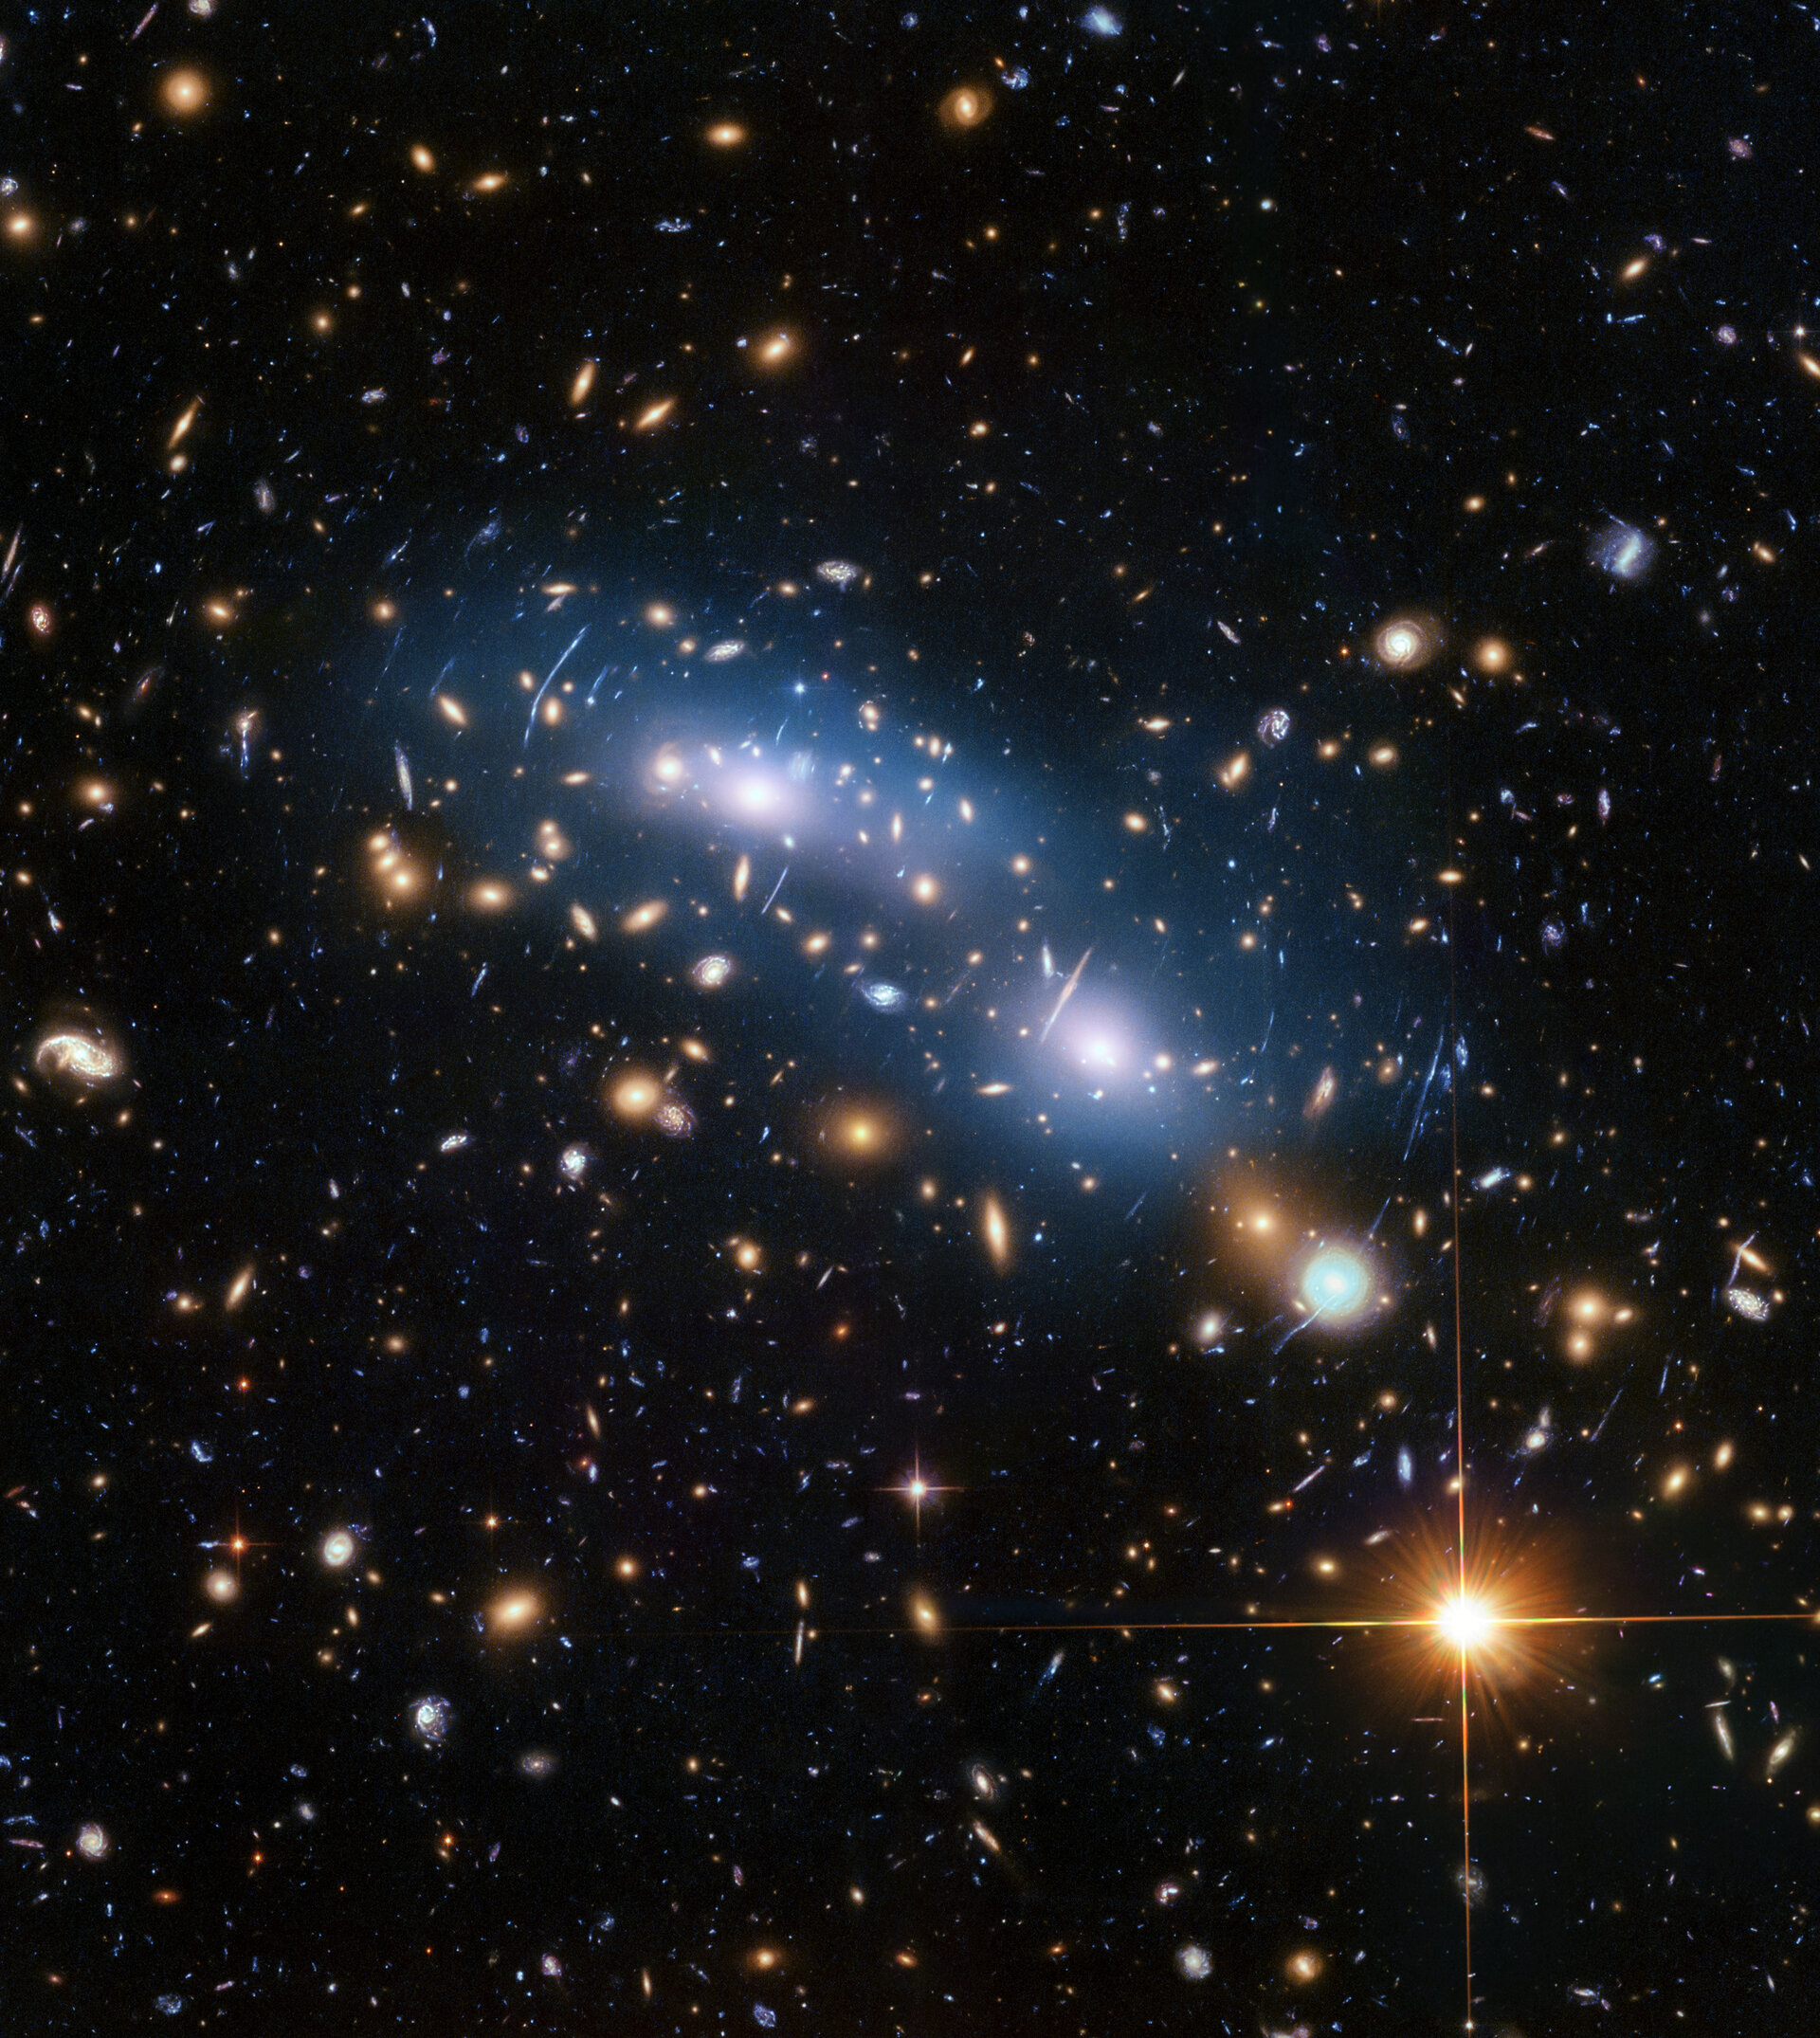 Intracluster light in galaxy cluster MACSJ0416